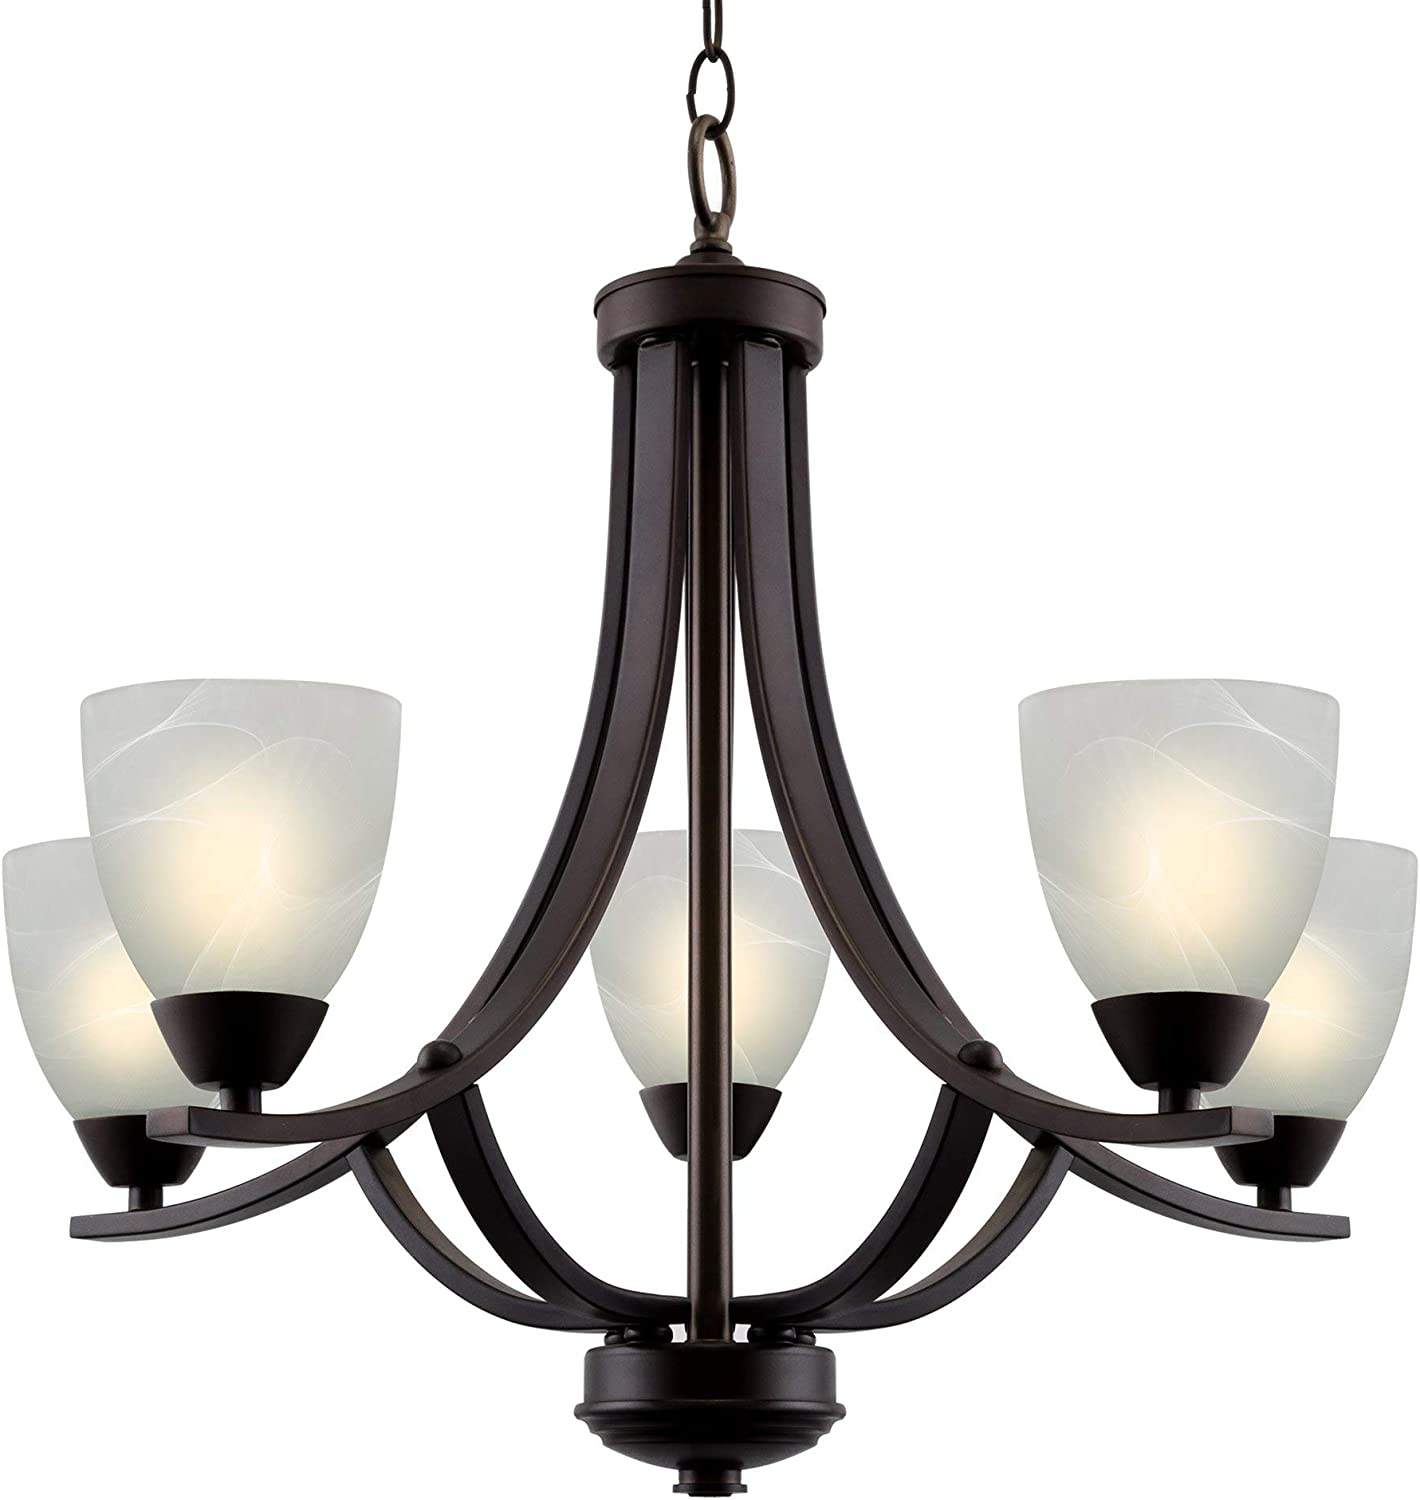 Kira Home Weston 24 Contemporary 5-Light Large Chandelier Alabaster Glass Shades, Adjustable Chain, Oil Rubbed Bronze Finish